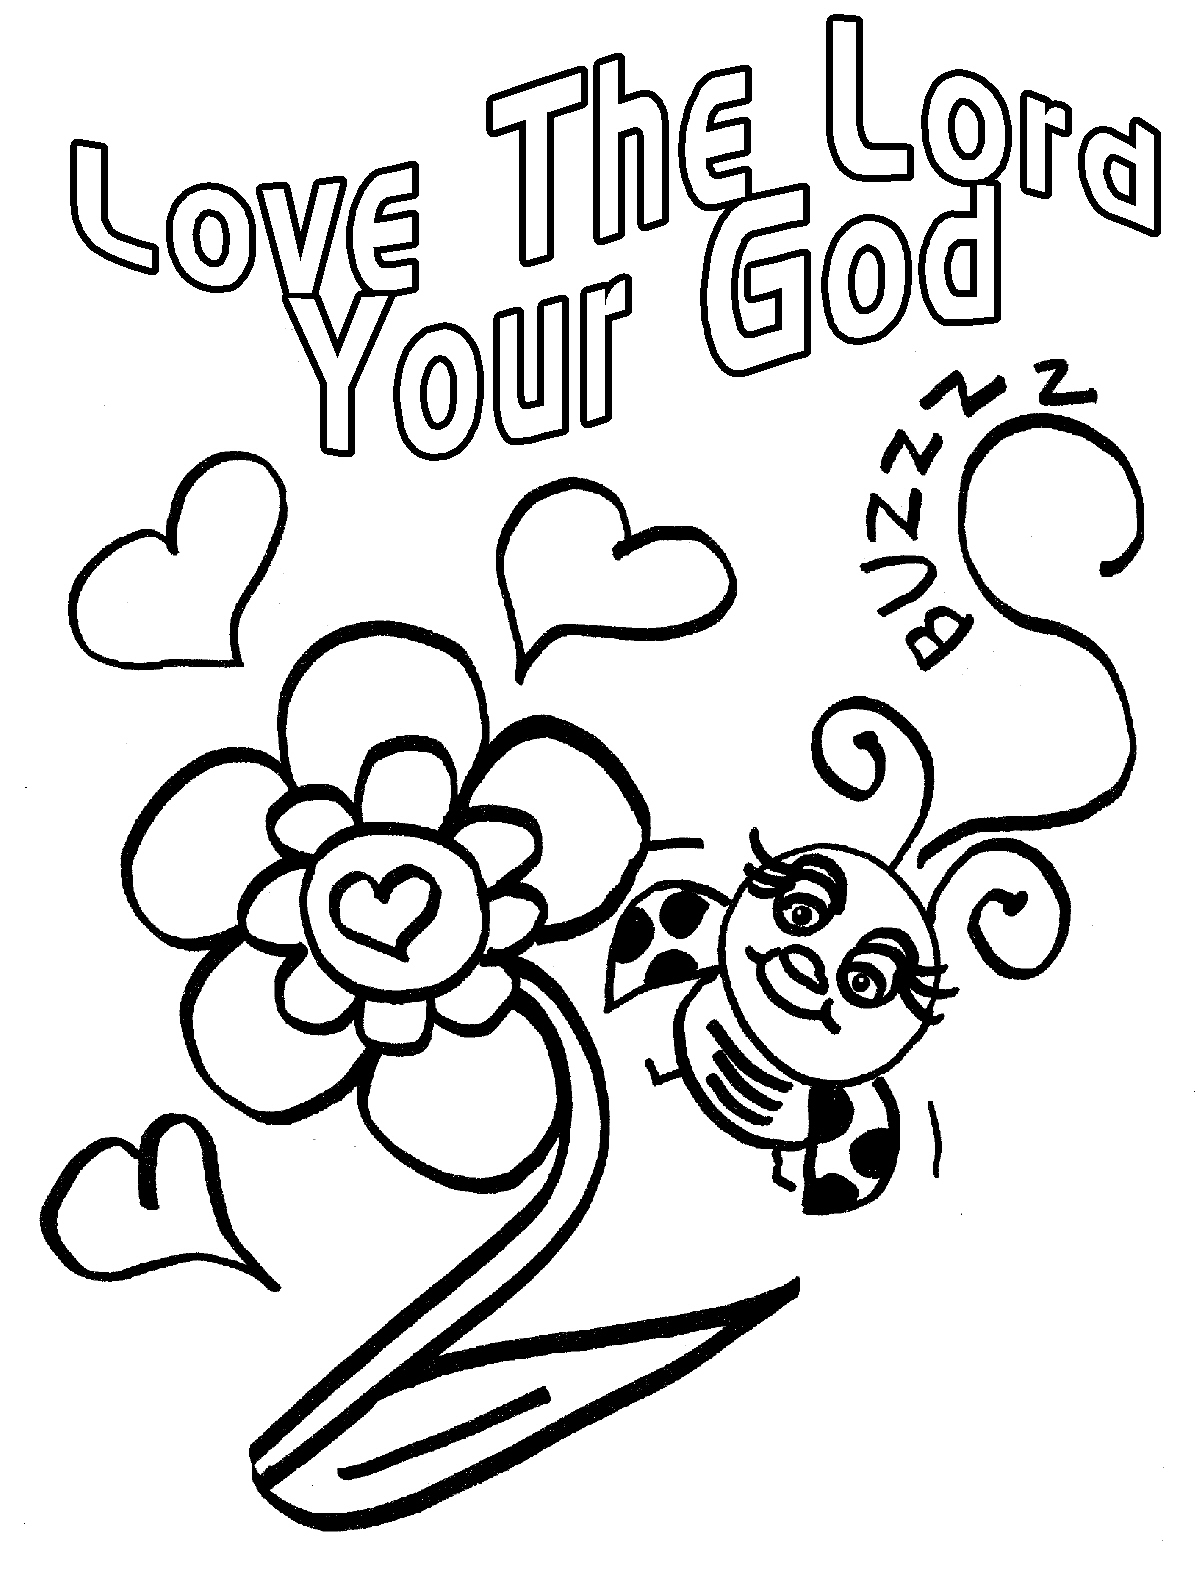 God Is Love Coloring Pages Free - Coloring Home